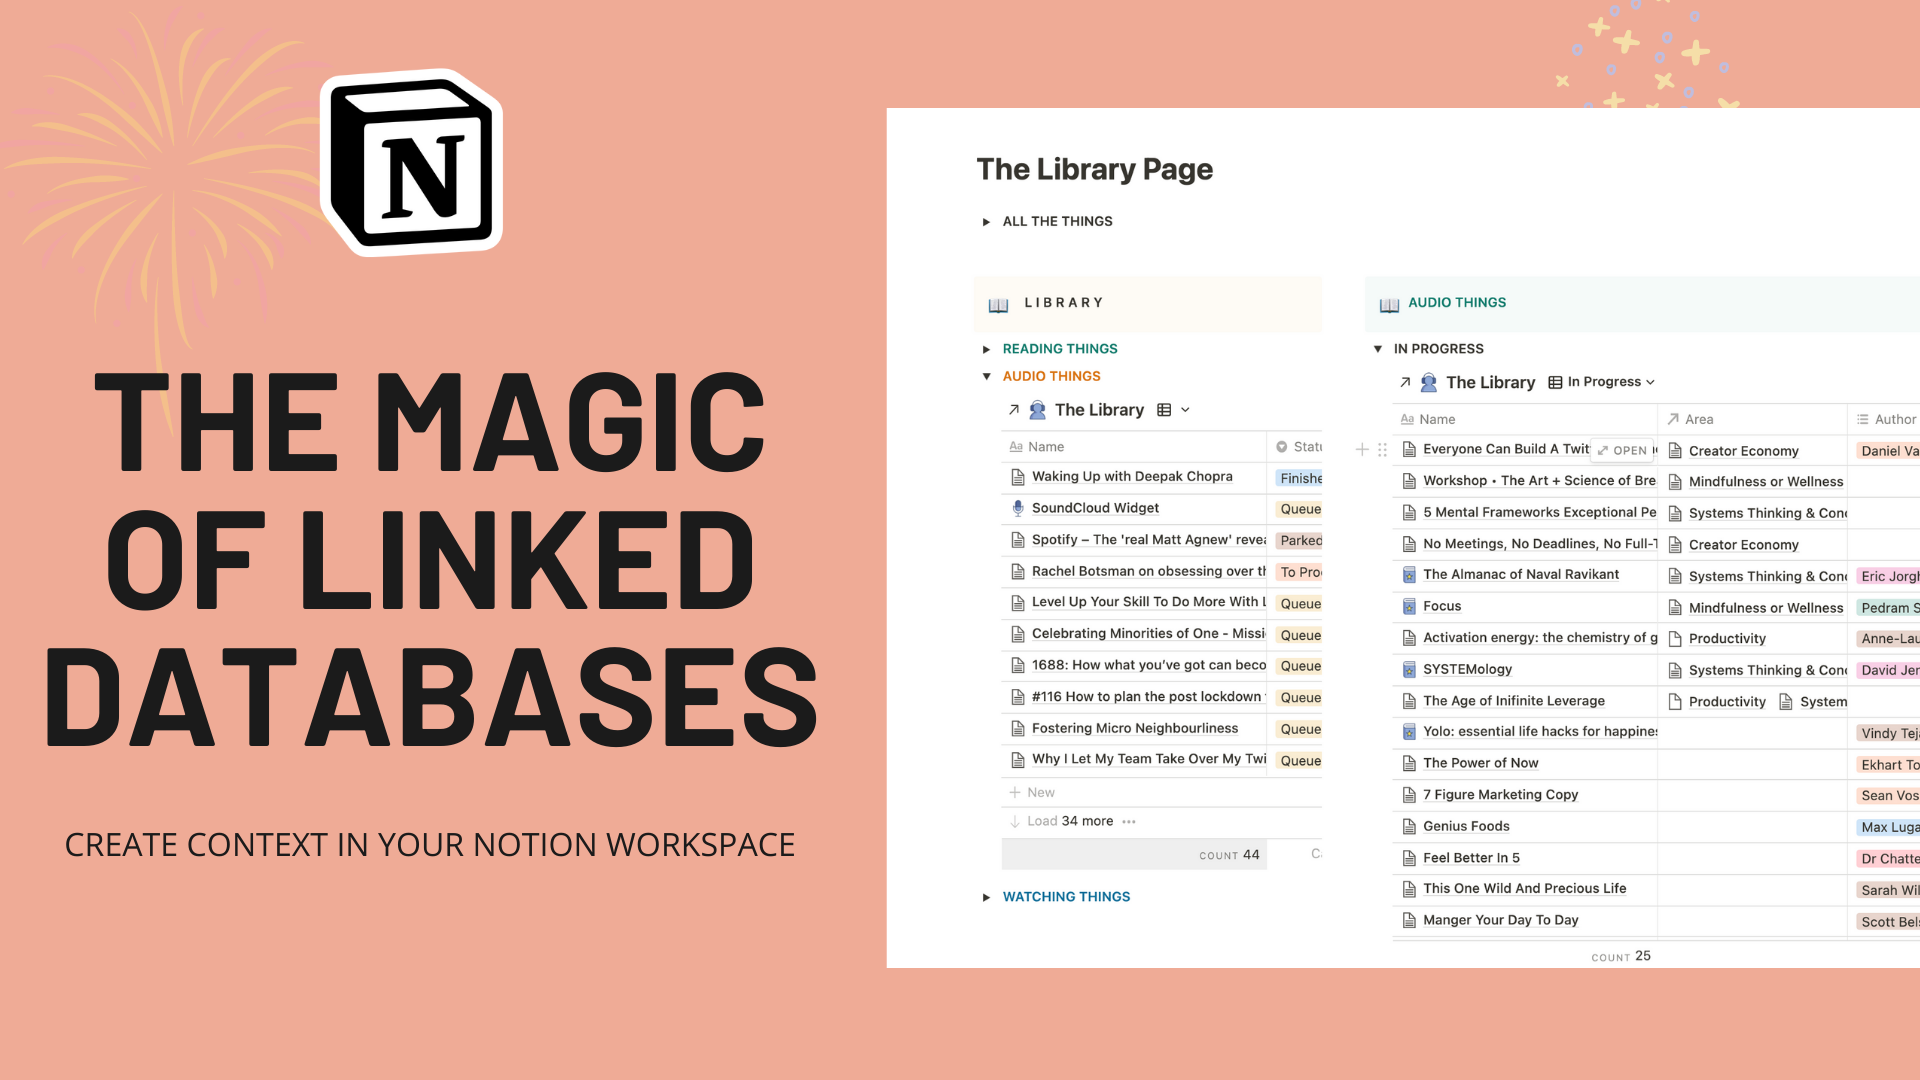 The Magic Of Linked Databases: Create Context in Your Notion Workspace